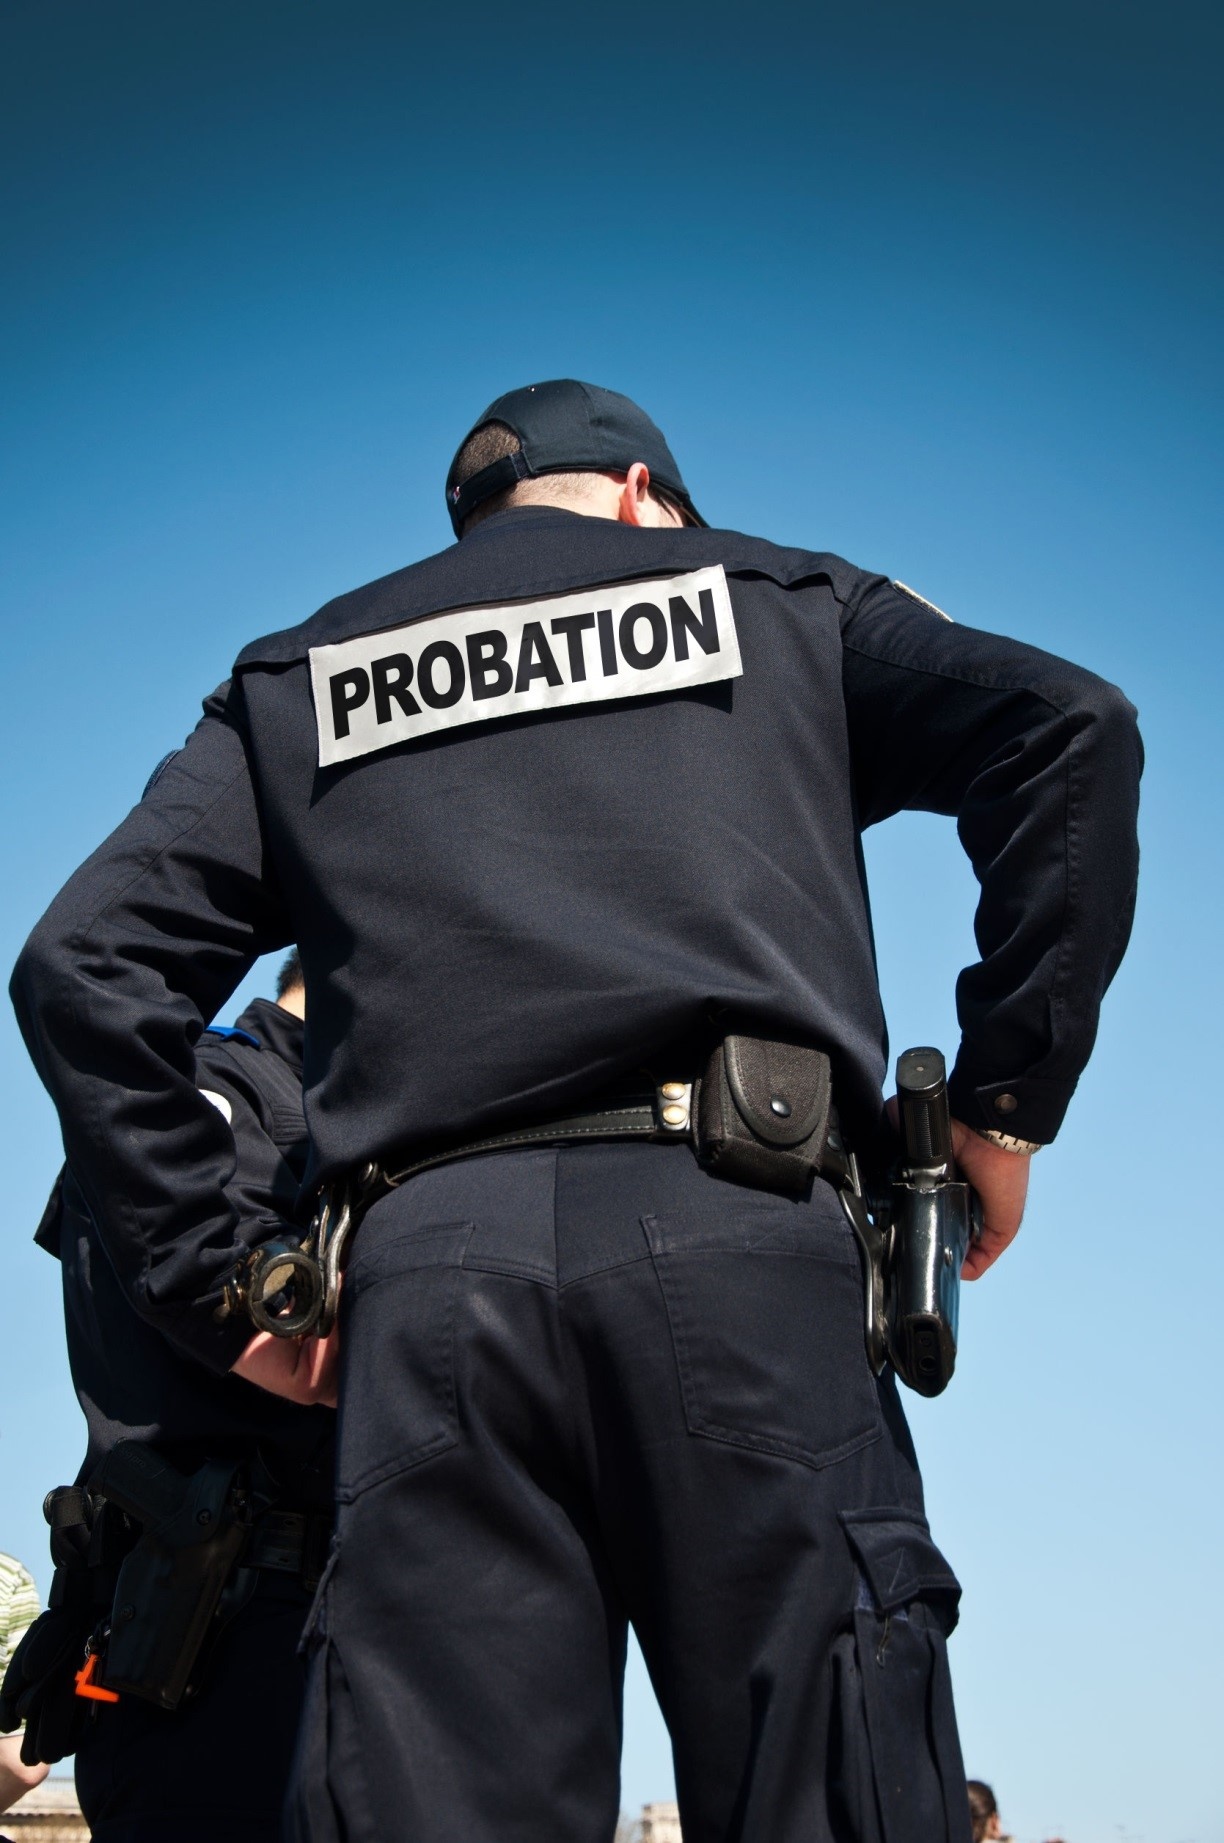 What Happens When You Violate the Terms of Your Probation?